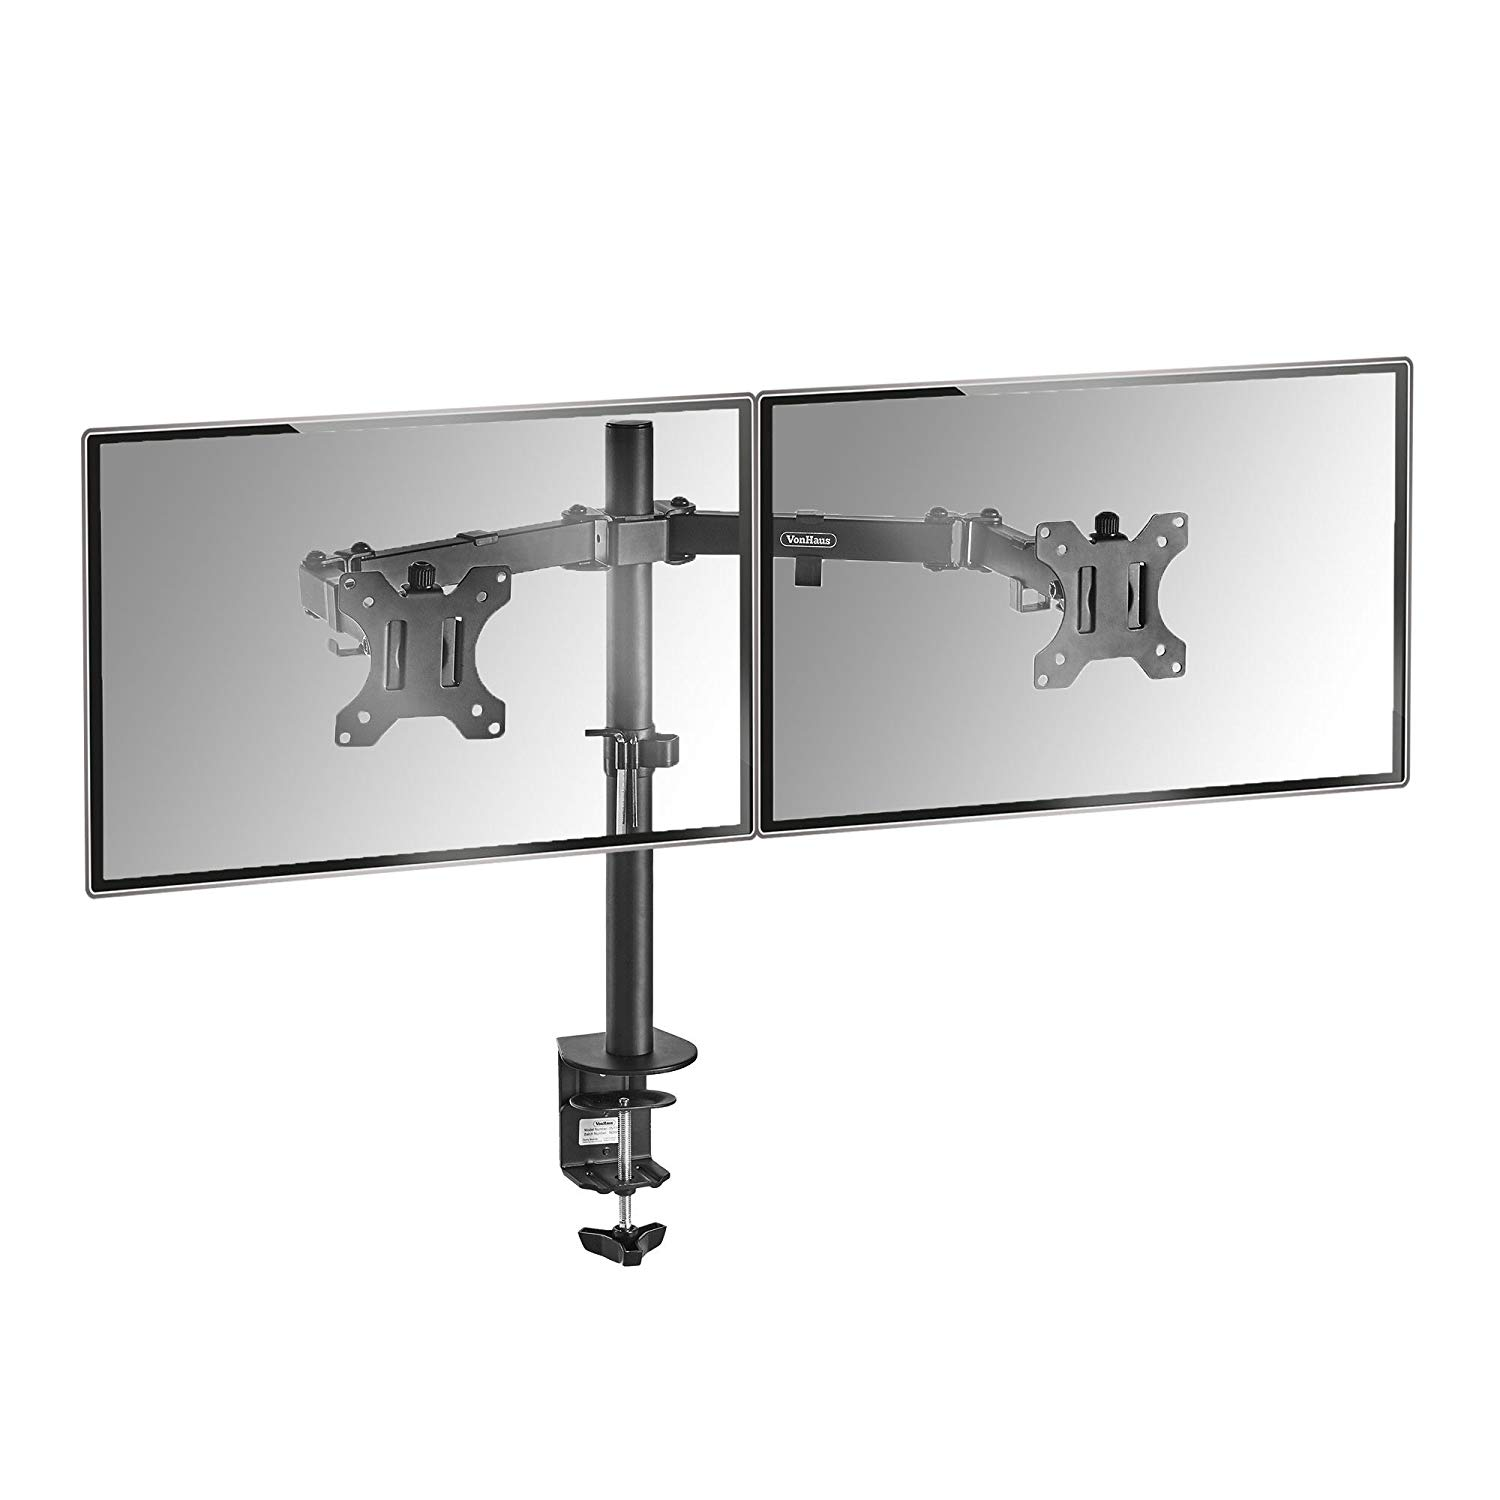 "VonHaus Dual Monitor Mount for 13-32"" Screens"